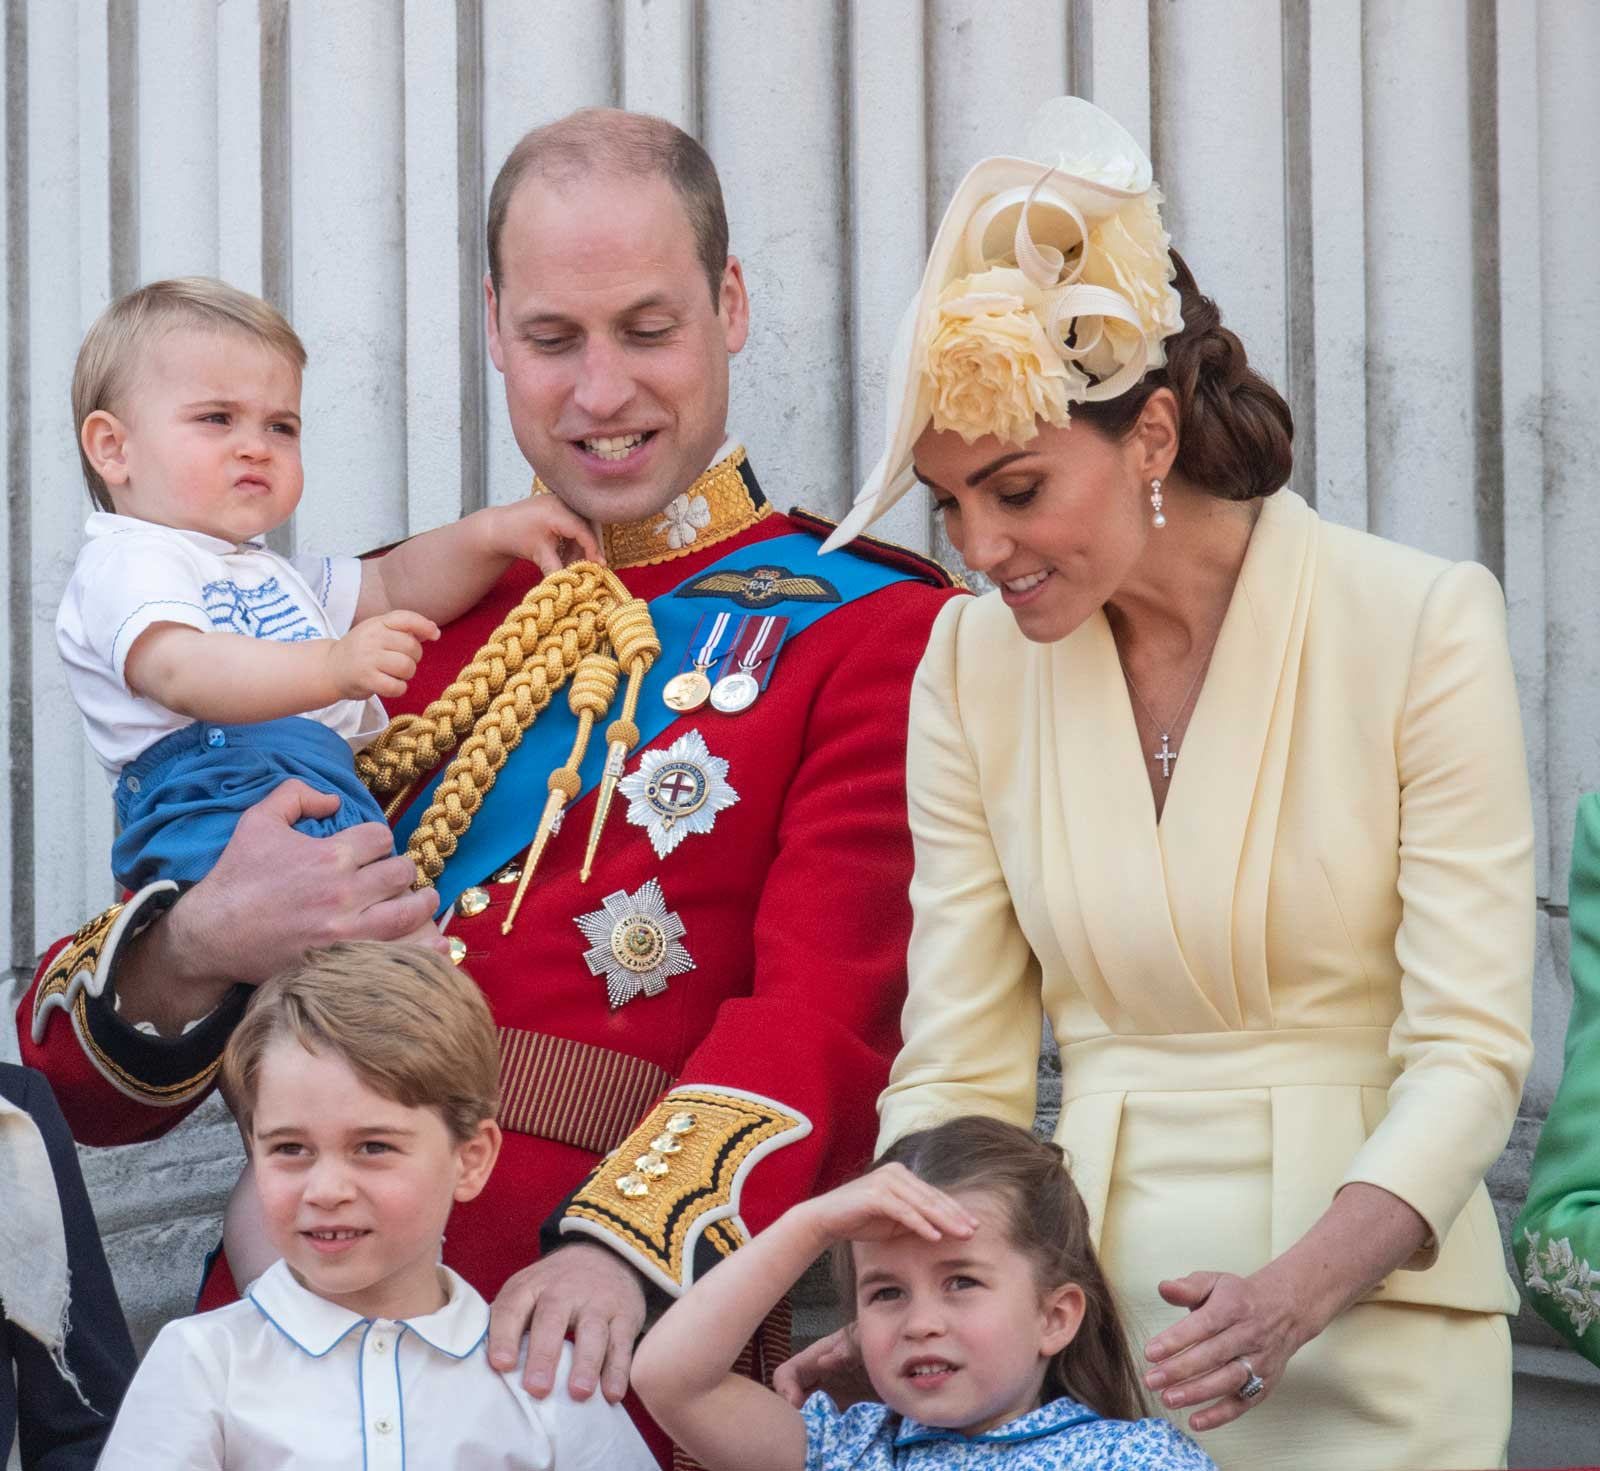 Prince William, Duke of Cambridge with Catherine, Duchess of Cambridge, Princess Charlotte of Cambridge, Prince George of Cambridge and Prince Louis of Cambridge during Trooping The Colour